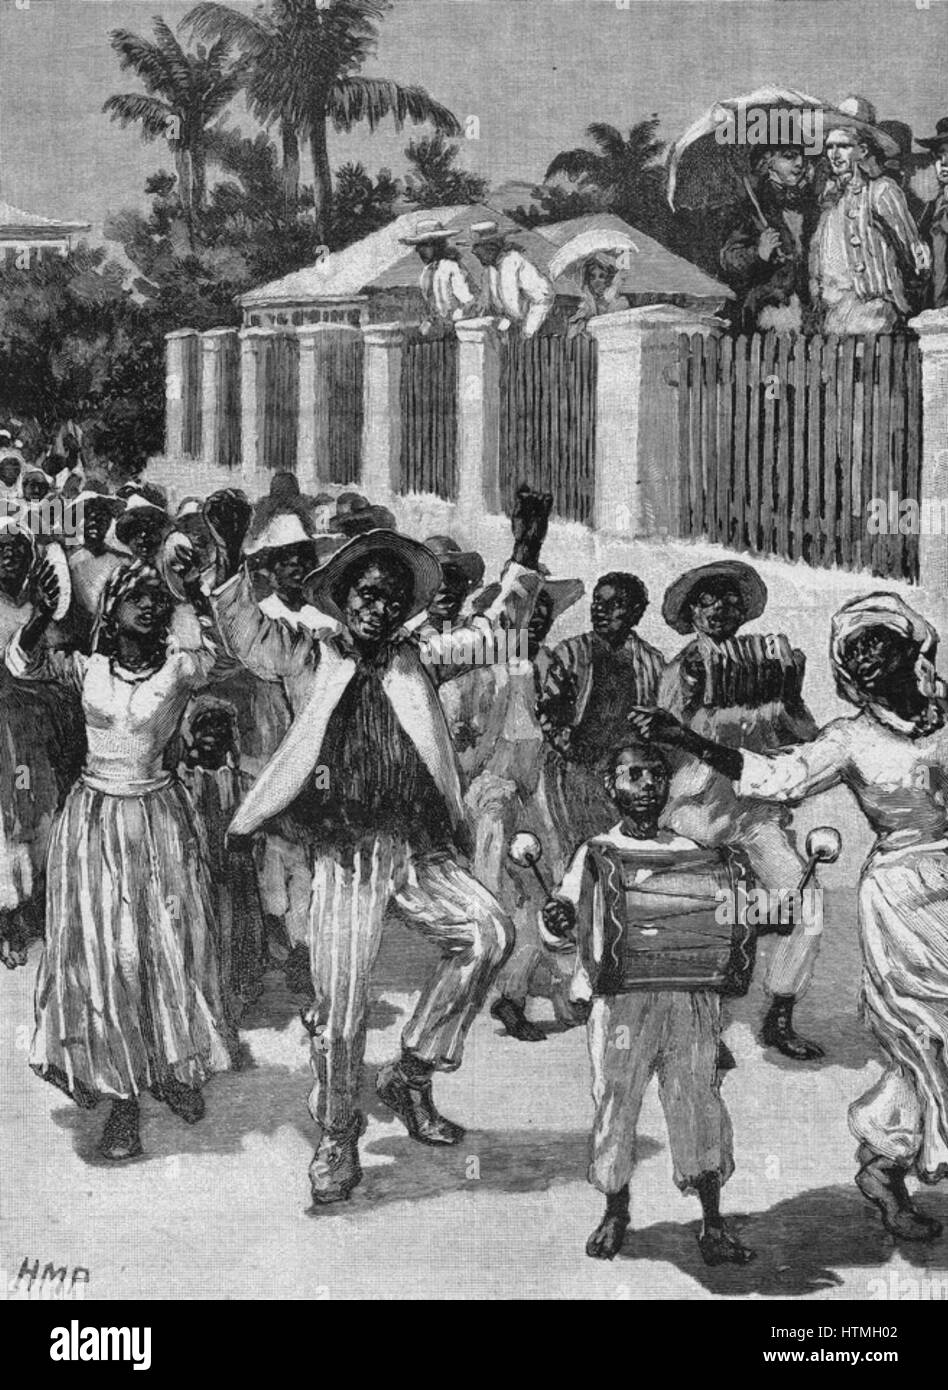 Abolition of slavery in British possessions on 1 August 1834. Emancipation festival in Barbados celebrating the - Stock Image